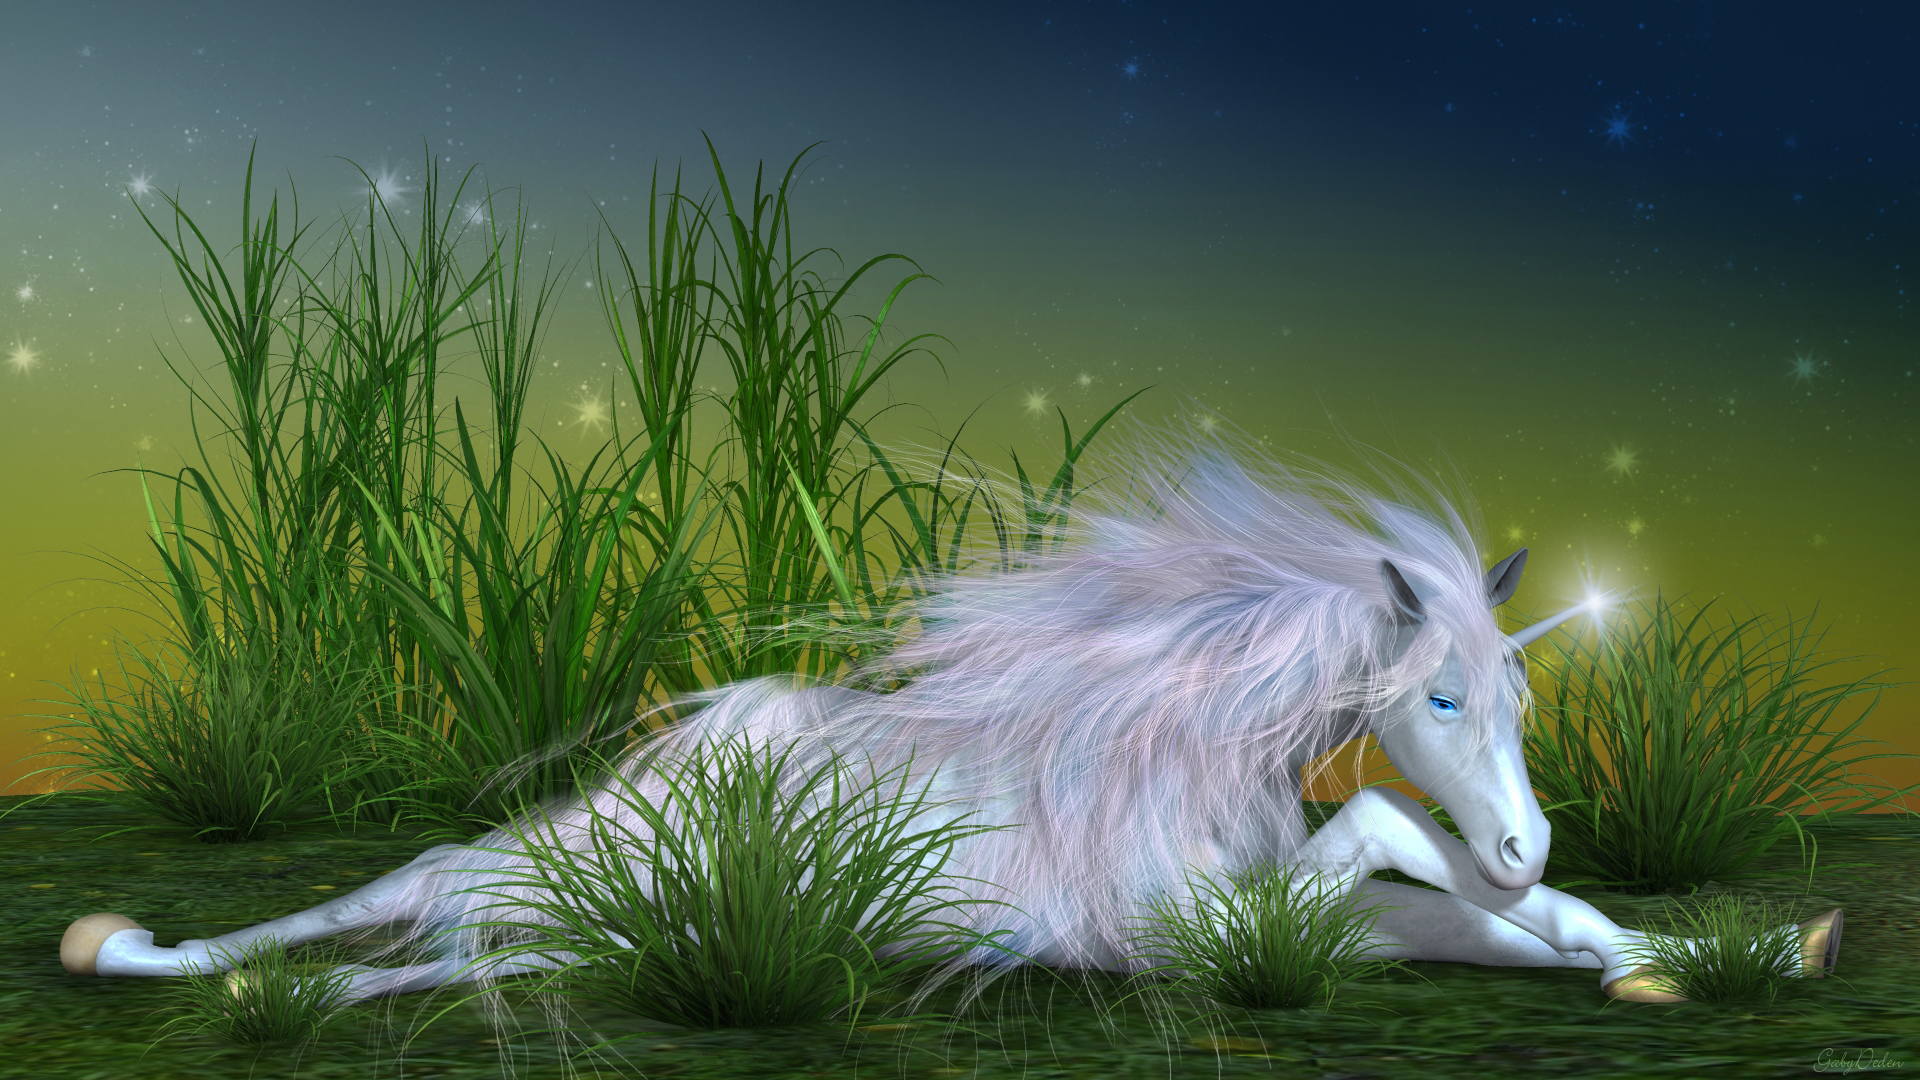 Unicorn desktop wallpaper wallpaper high definition high quality unicorn desktop wallpaper voltagebd Images